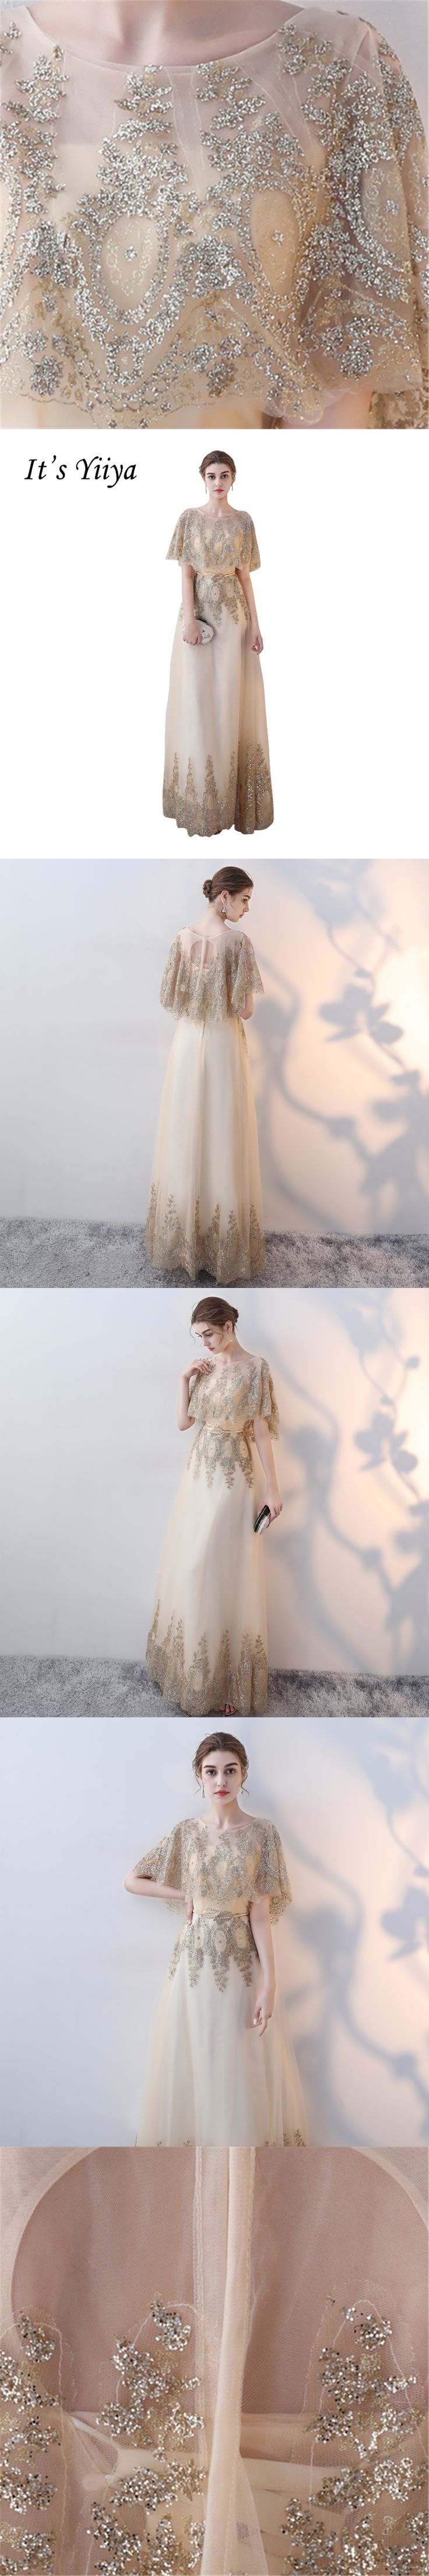 It's Yiiya New Gold O-Neck Bat-wing Sleeves Floor Length Evening Dresses Luxurious Bling Sequined Sexy Illusion Prom Dress X289